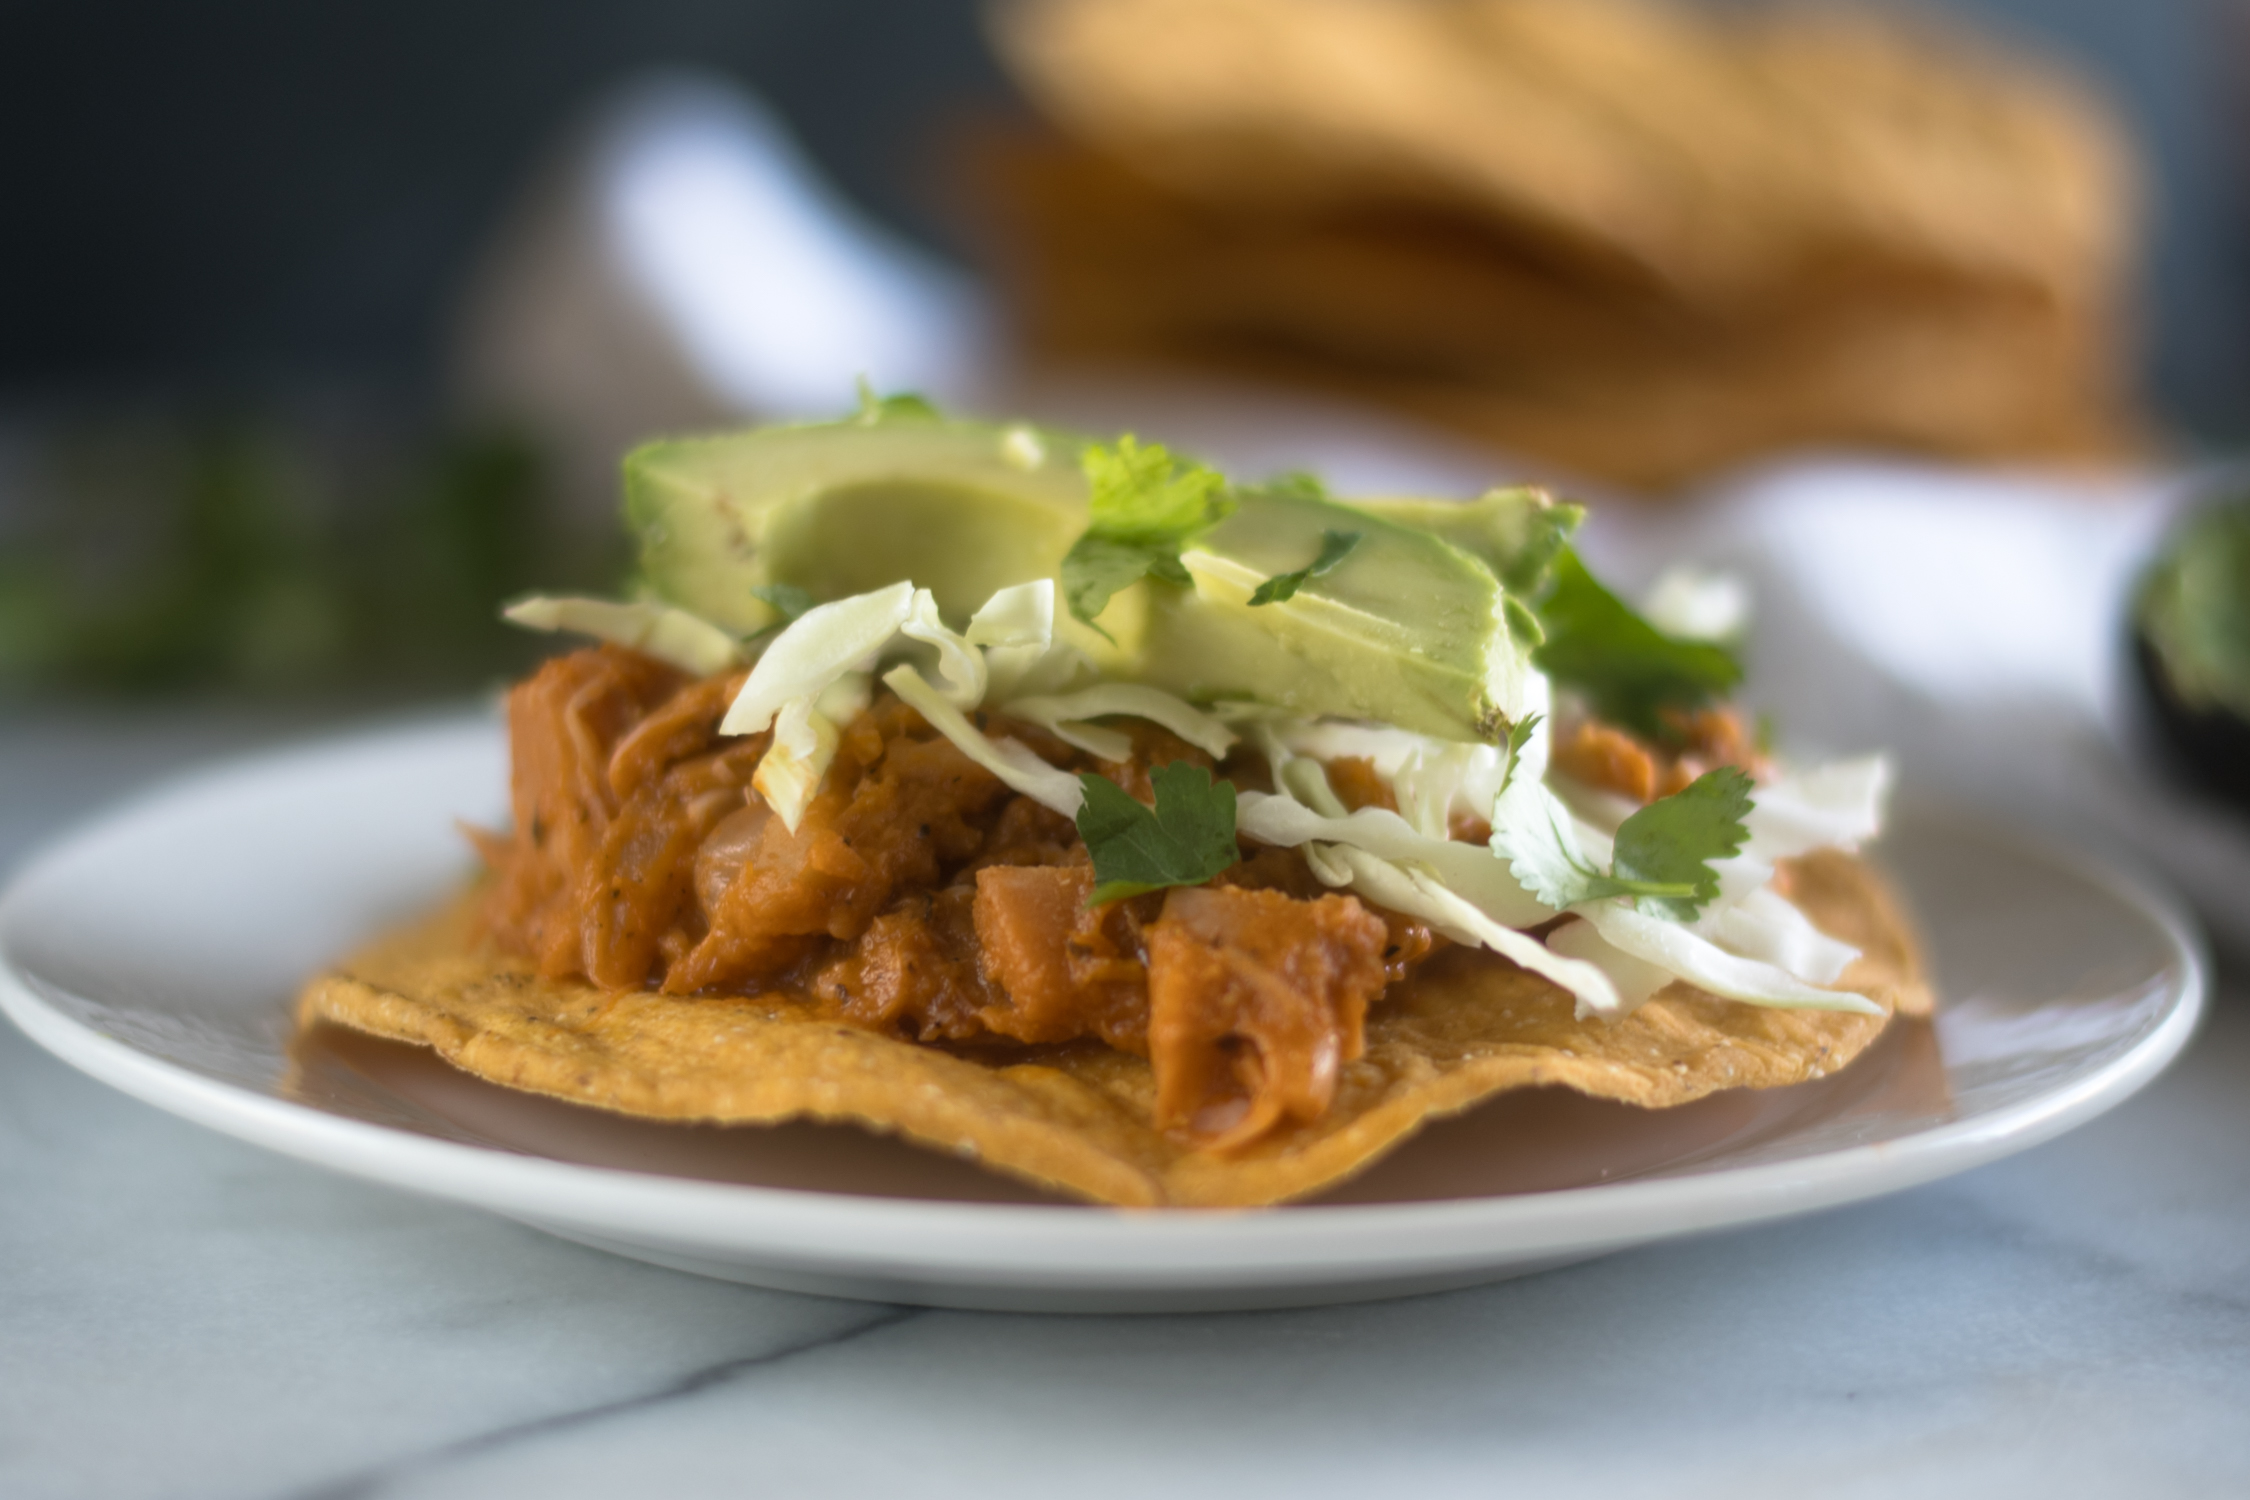 Vegan tostadas topped with jackfruit.